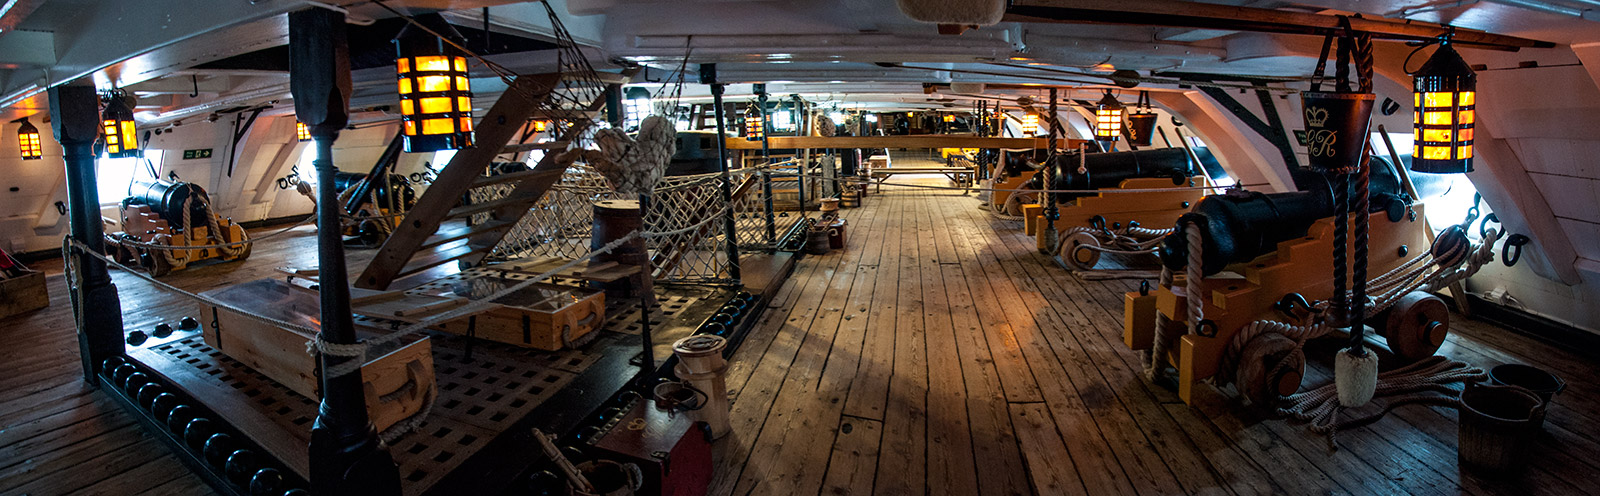 Hms Victory Amp Warrior In Portsmouth Happy Spooner